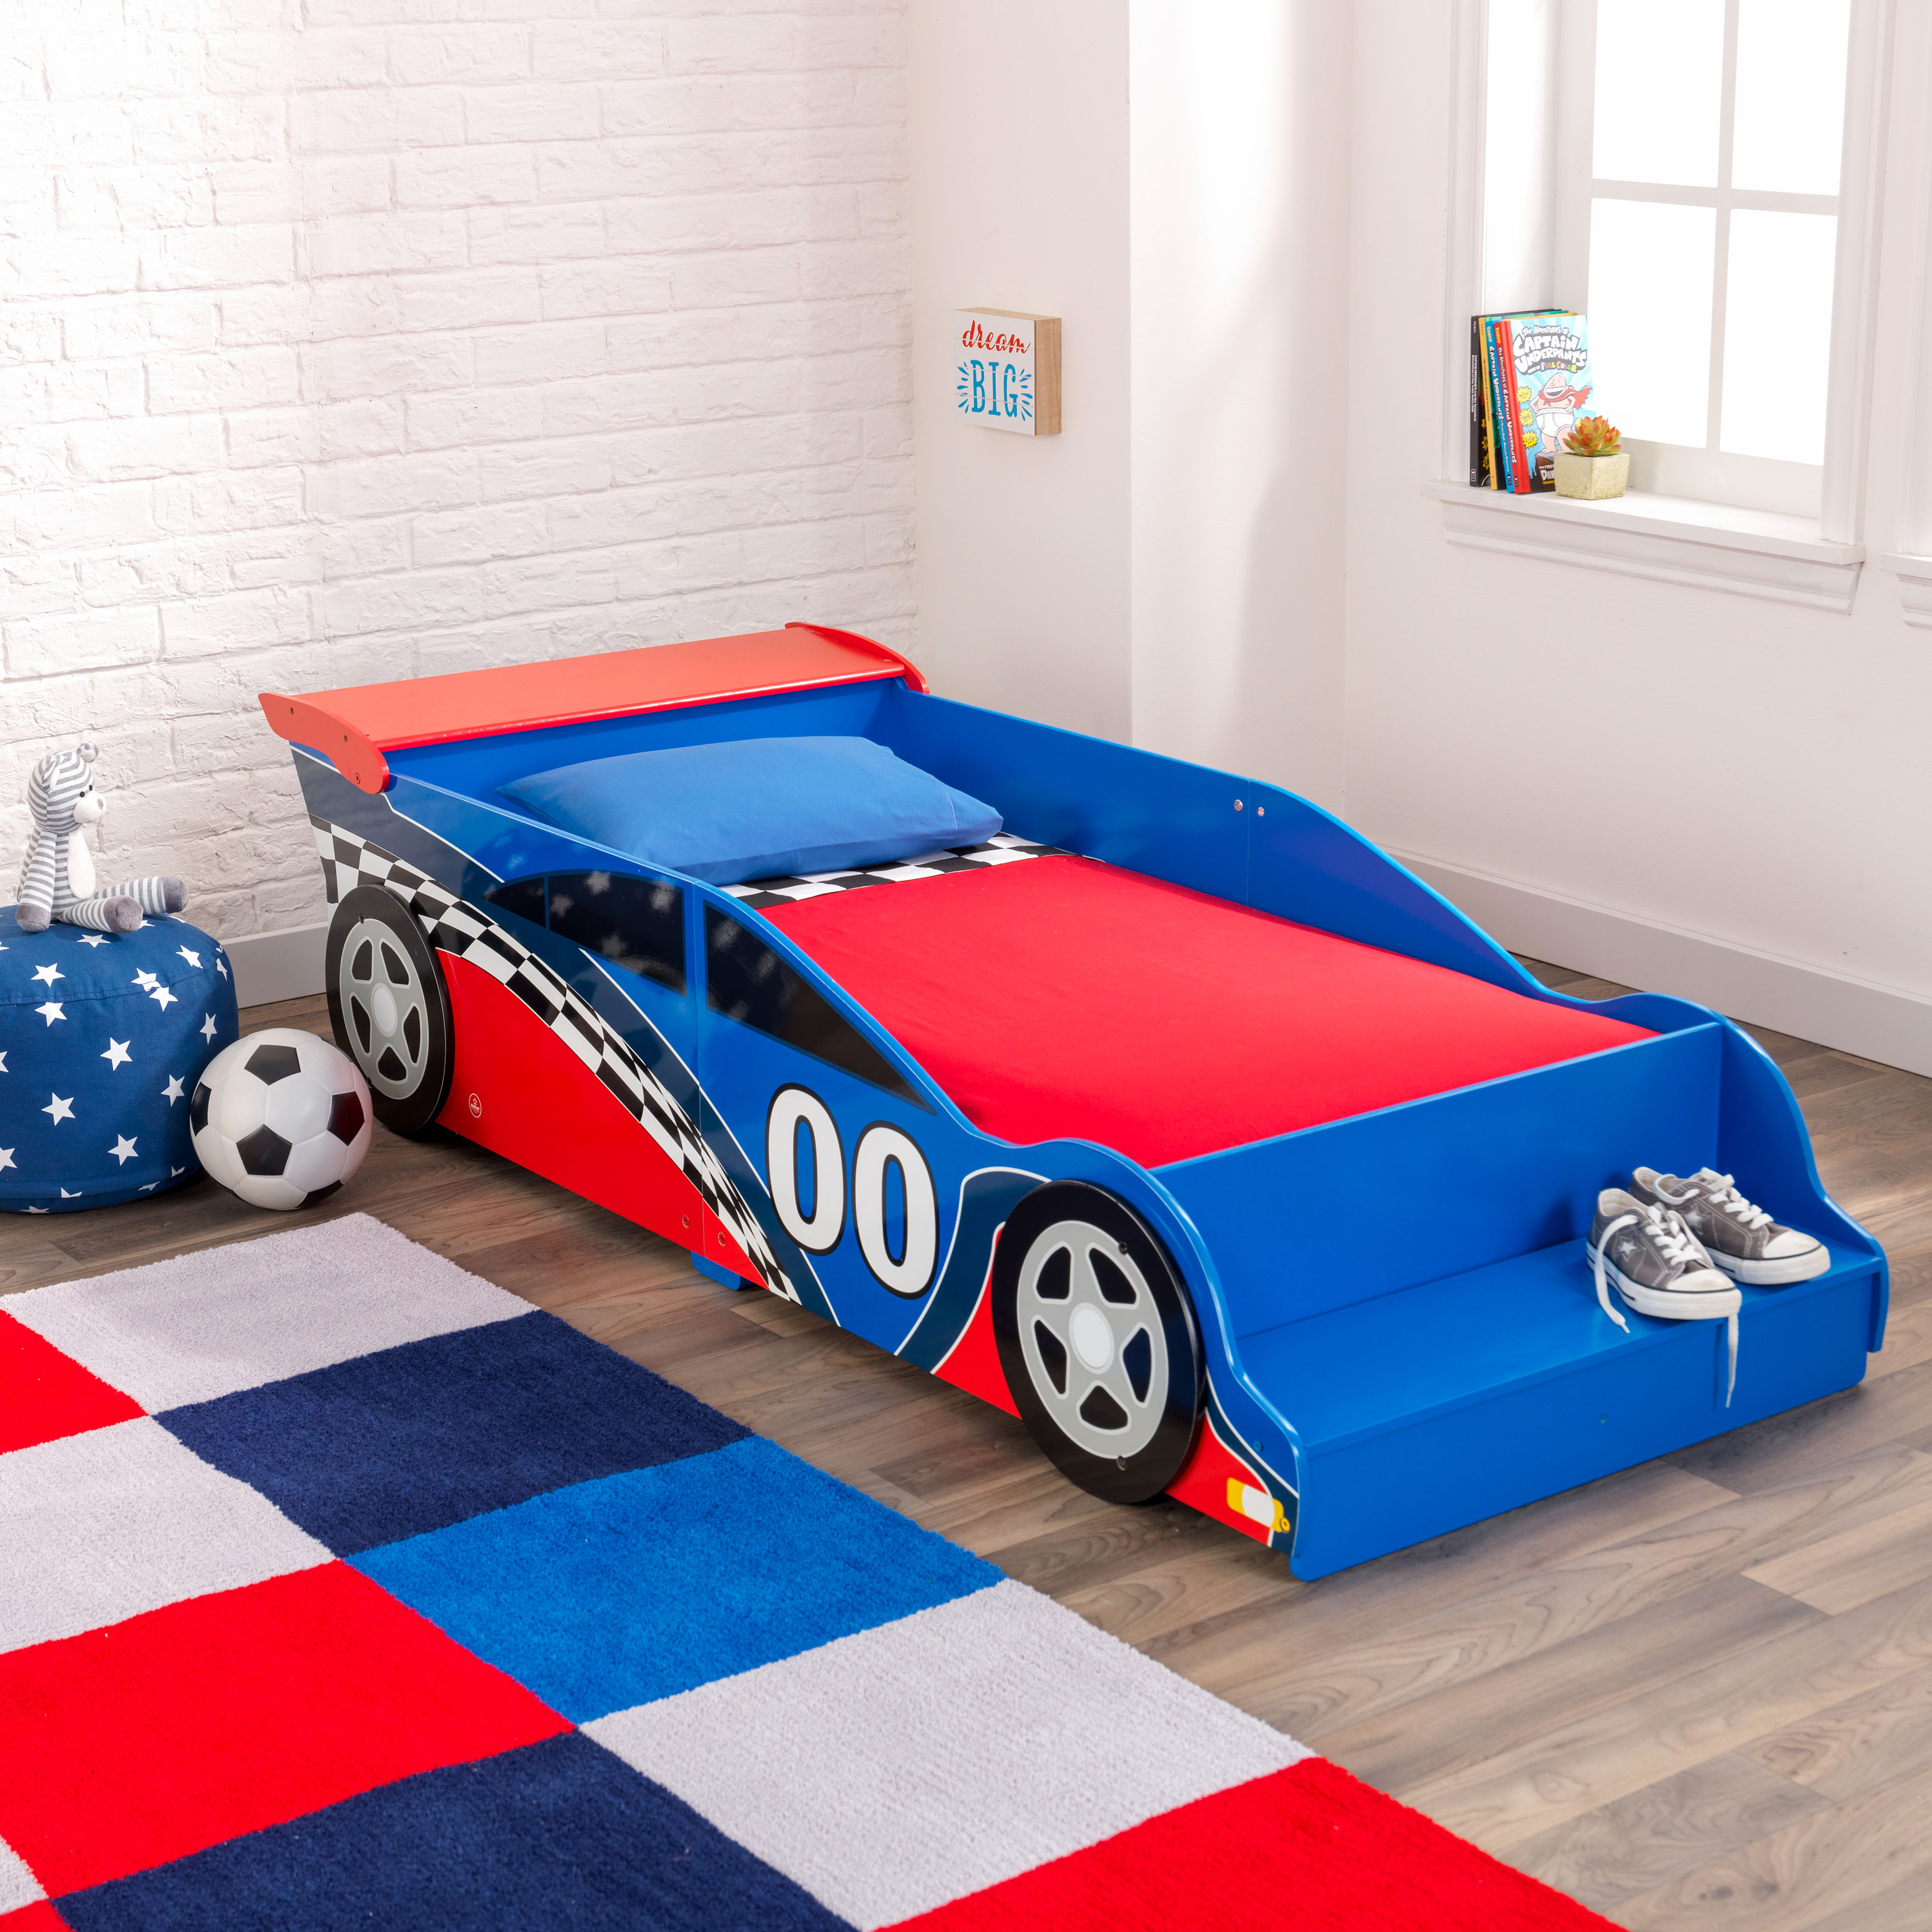 Kidkraft Wooden Race Car Toddler Bed Blue And Red With Bed Rails Ebay